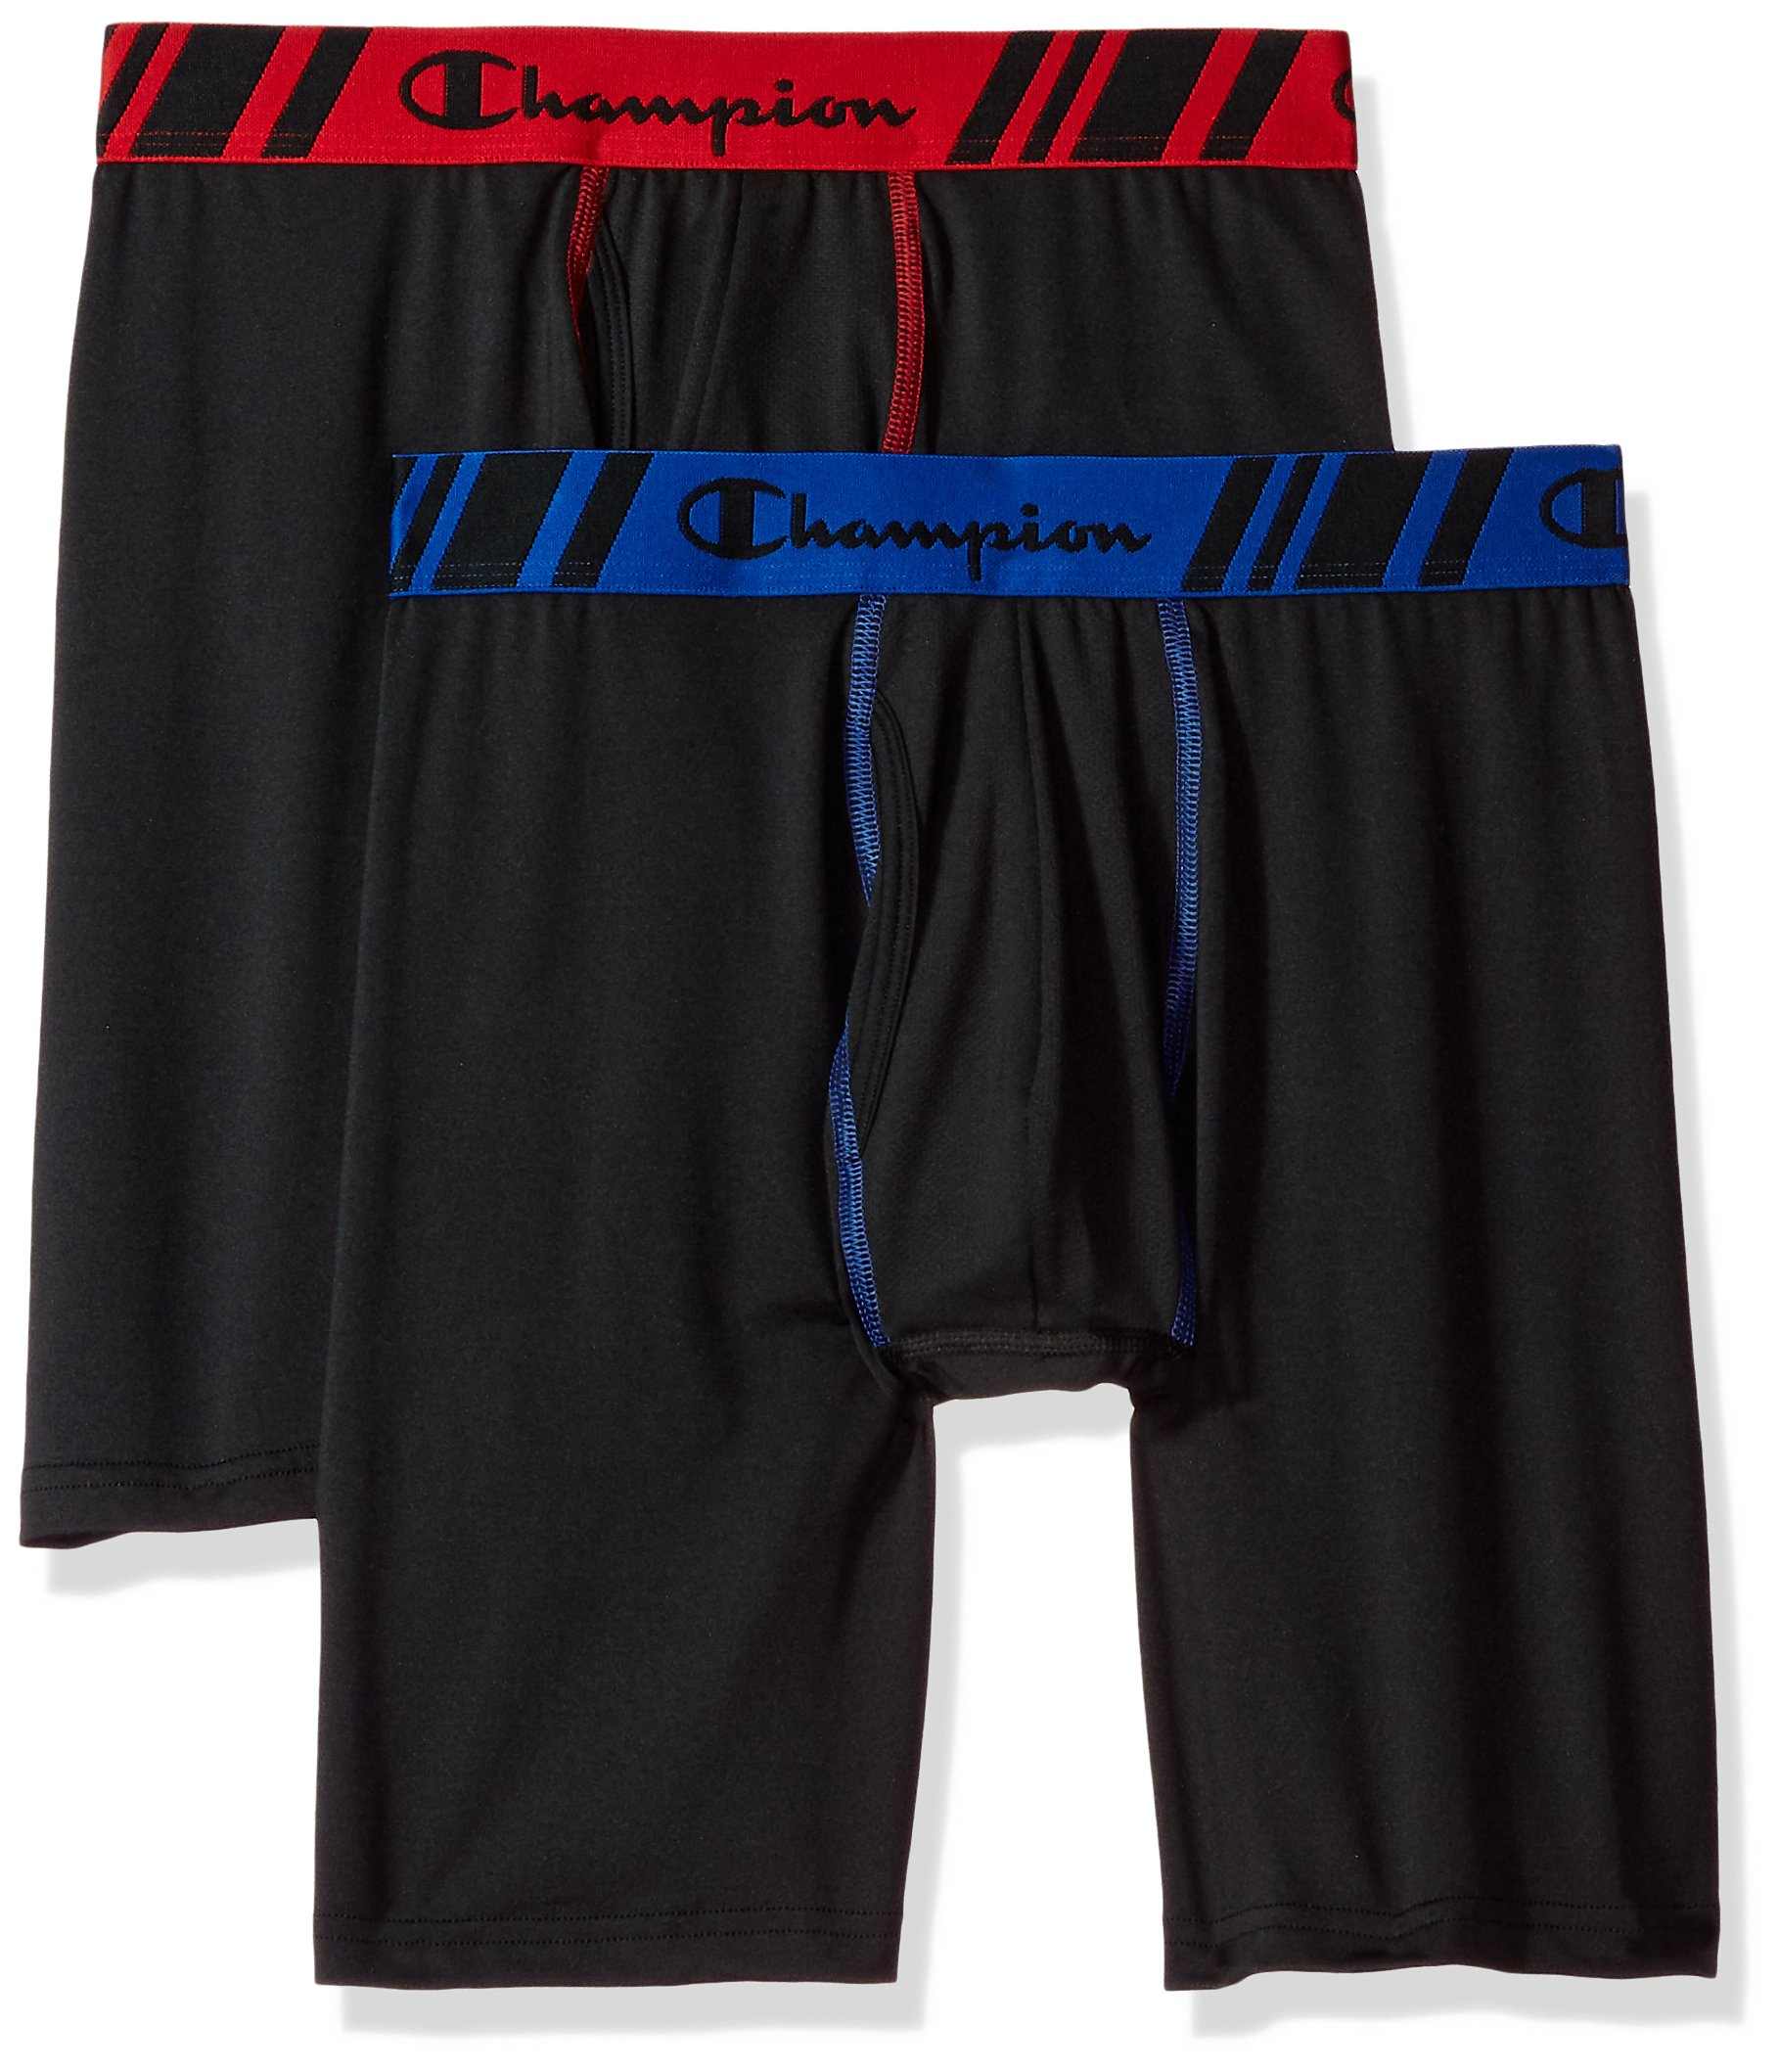 Champion Men's Tech Performance Long Boxer Brief, Black/Black, Small, 2-Pack by Champion